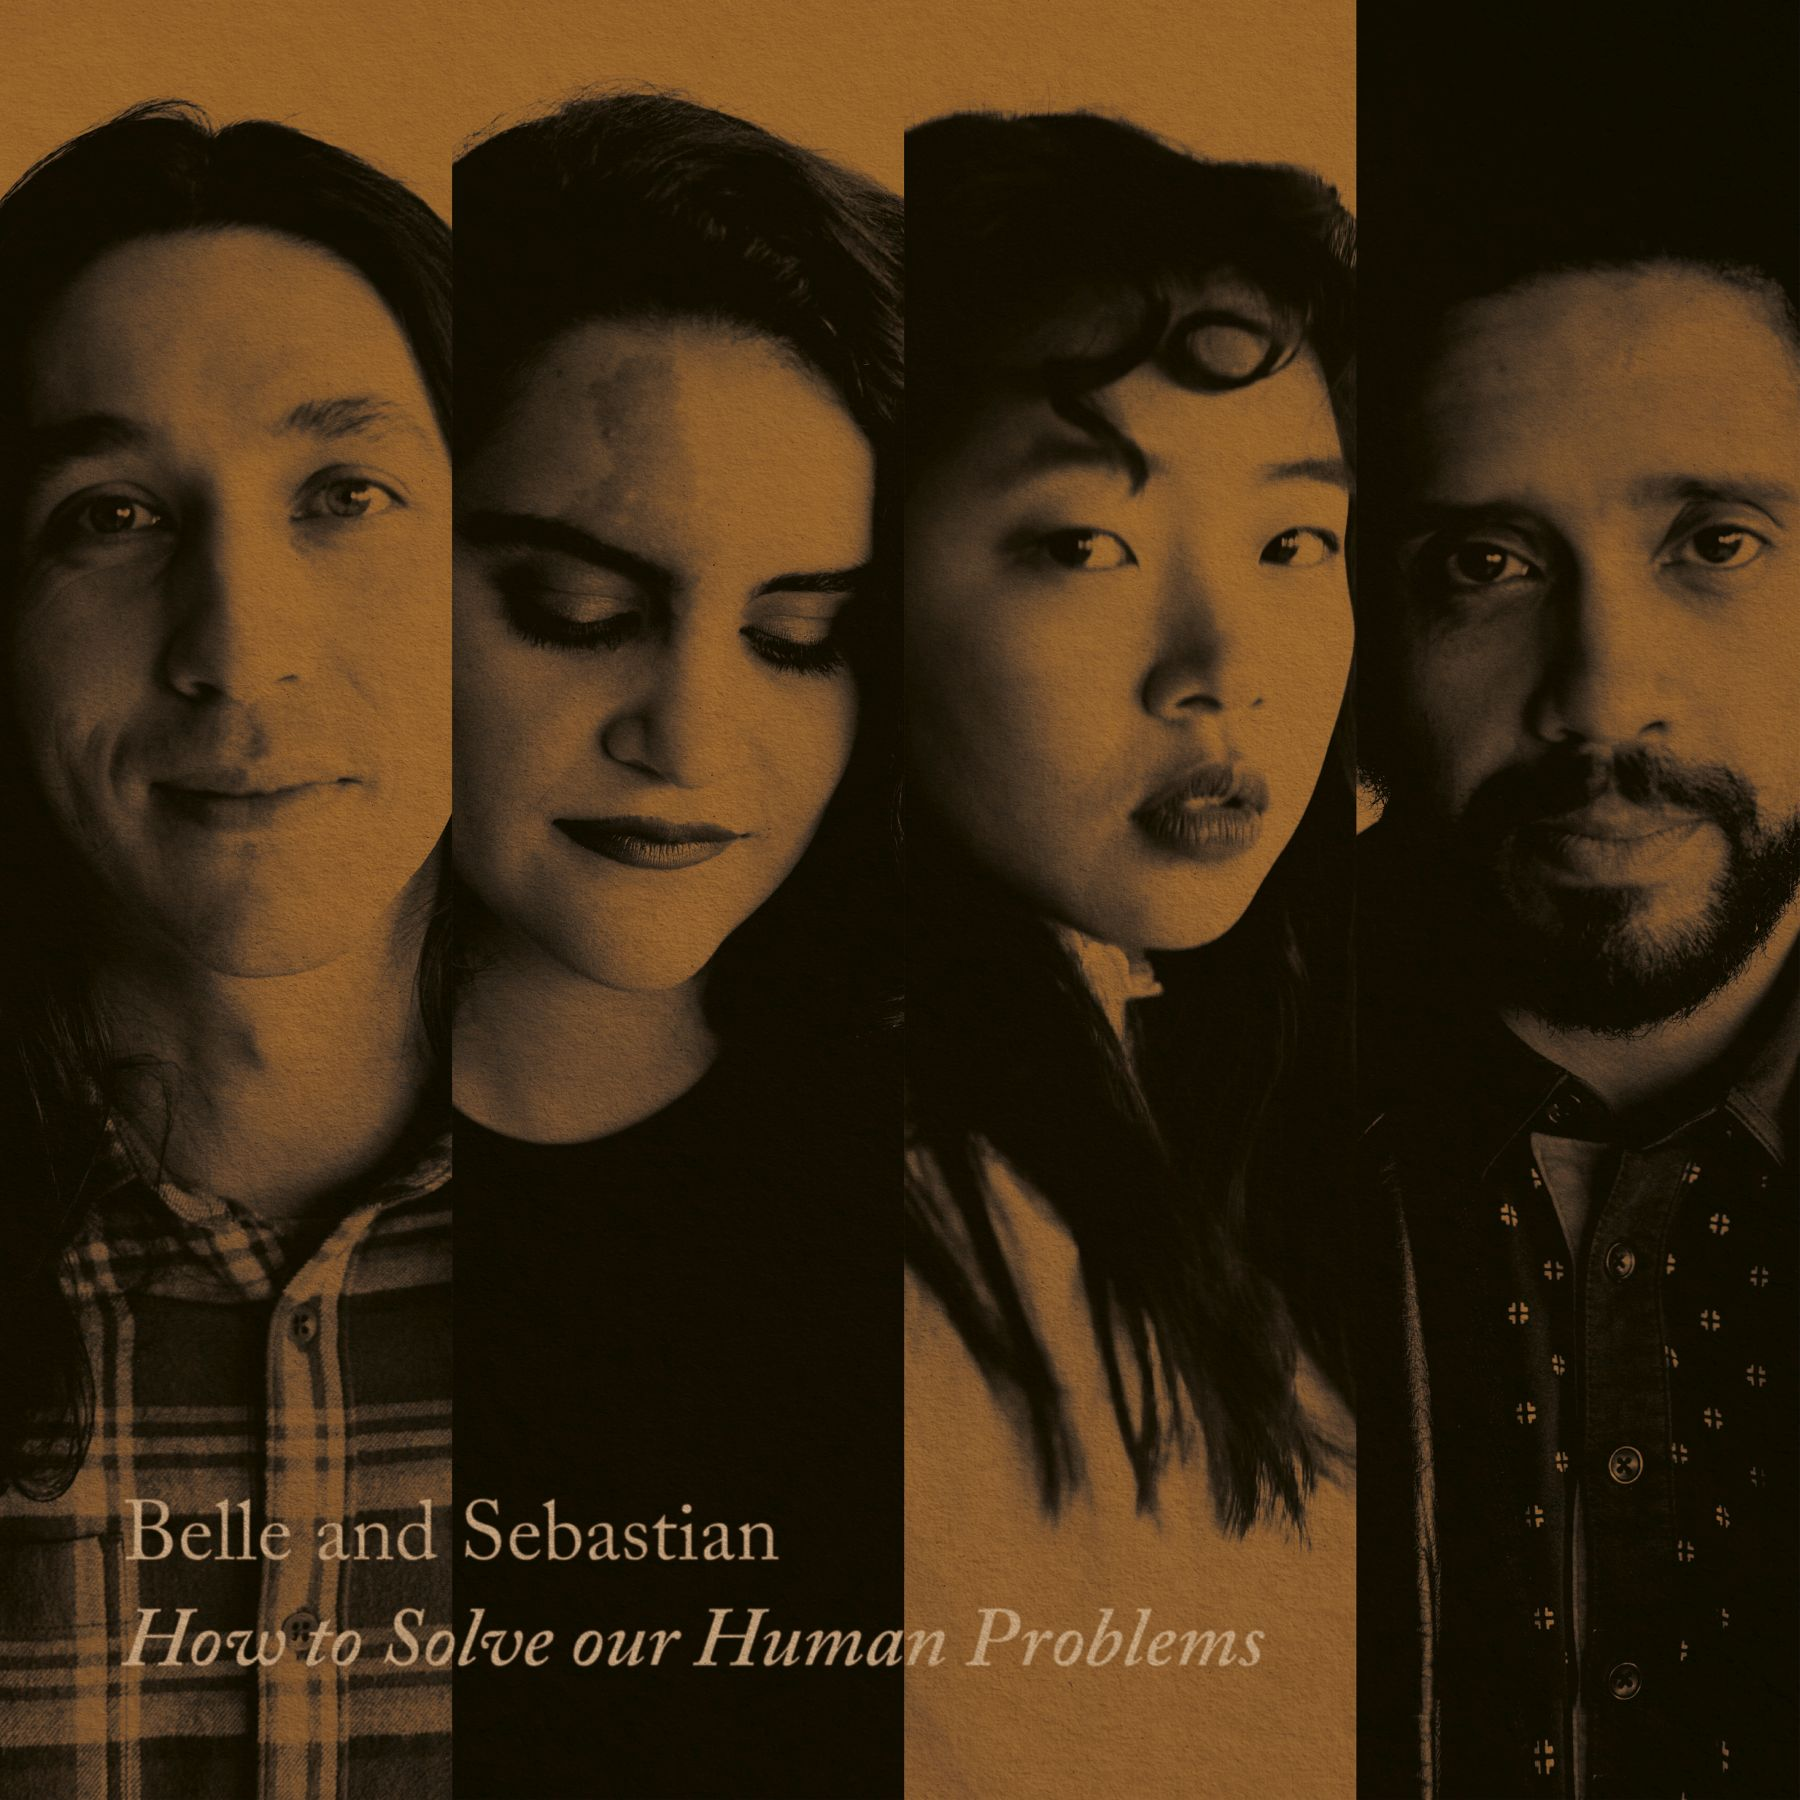 Belle And Sebastian - How To Solve Our Human Problems (Part 1)